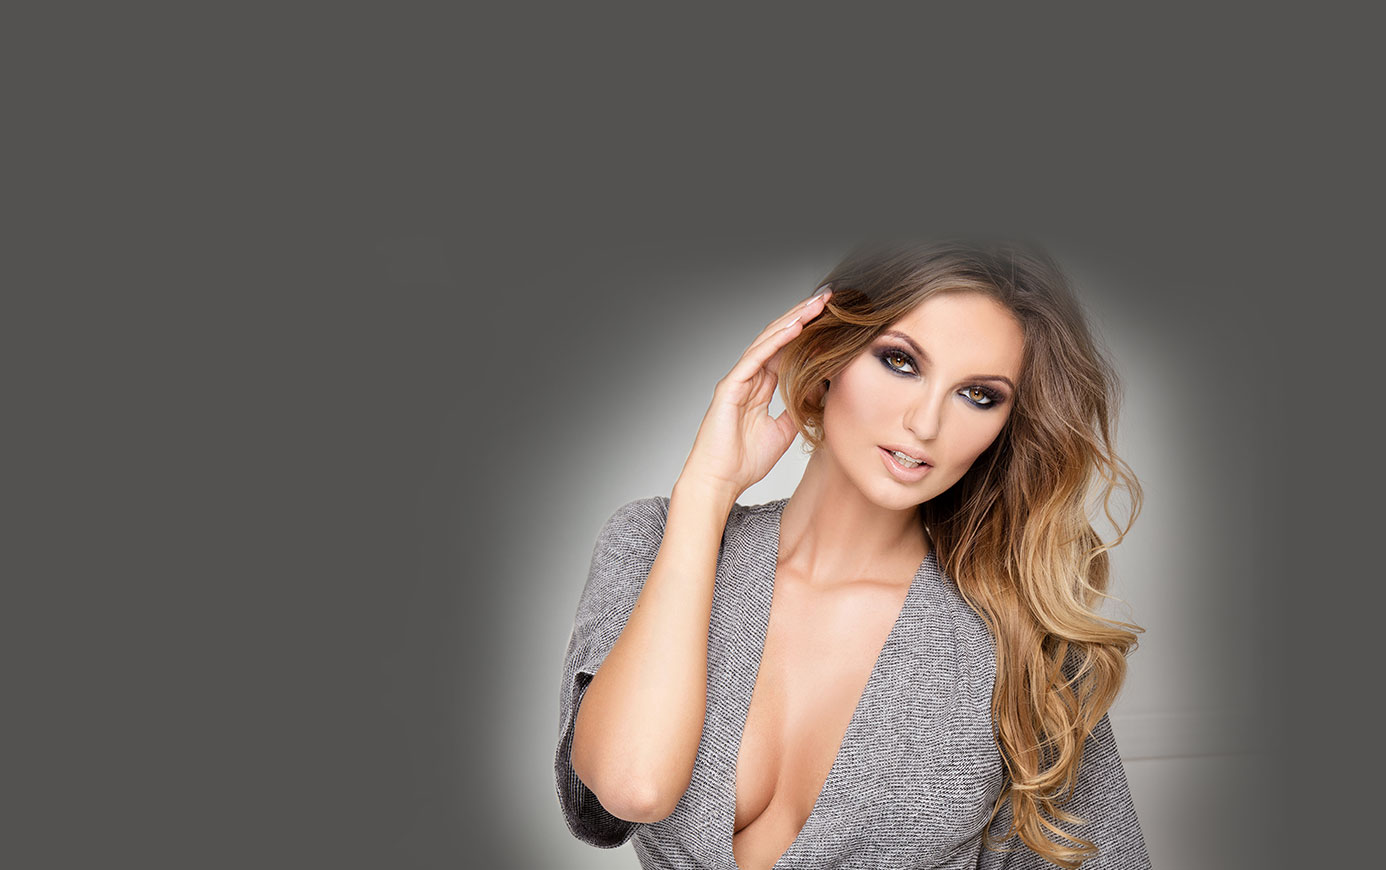 Transumbilical Breast Augmentation model